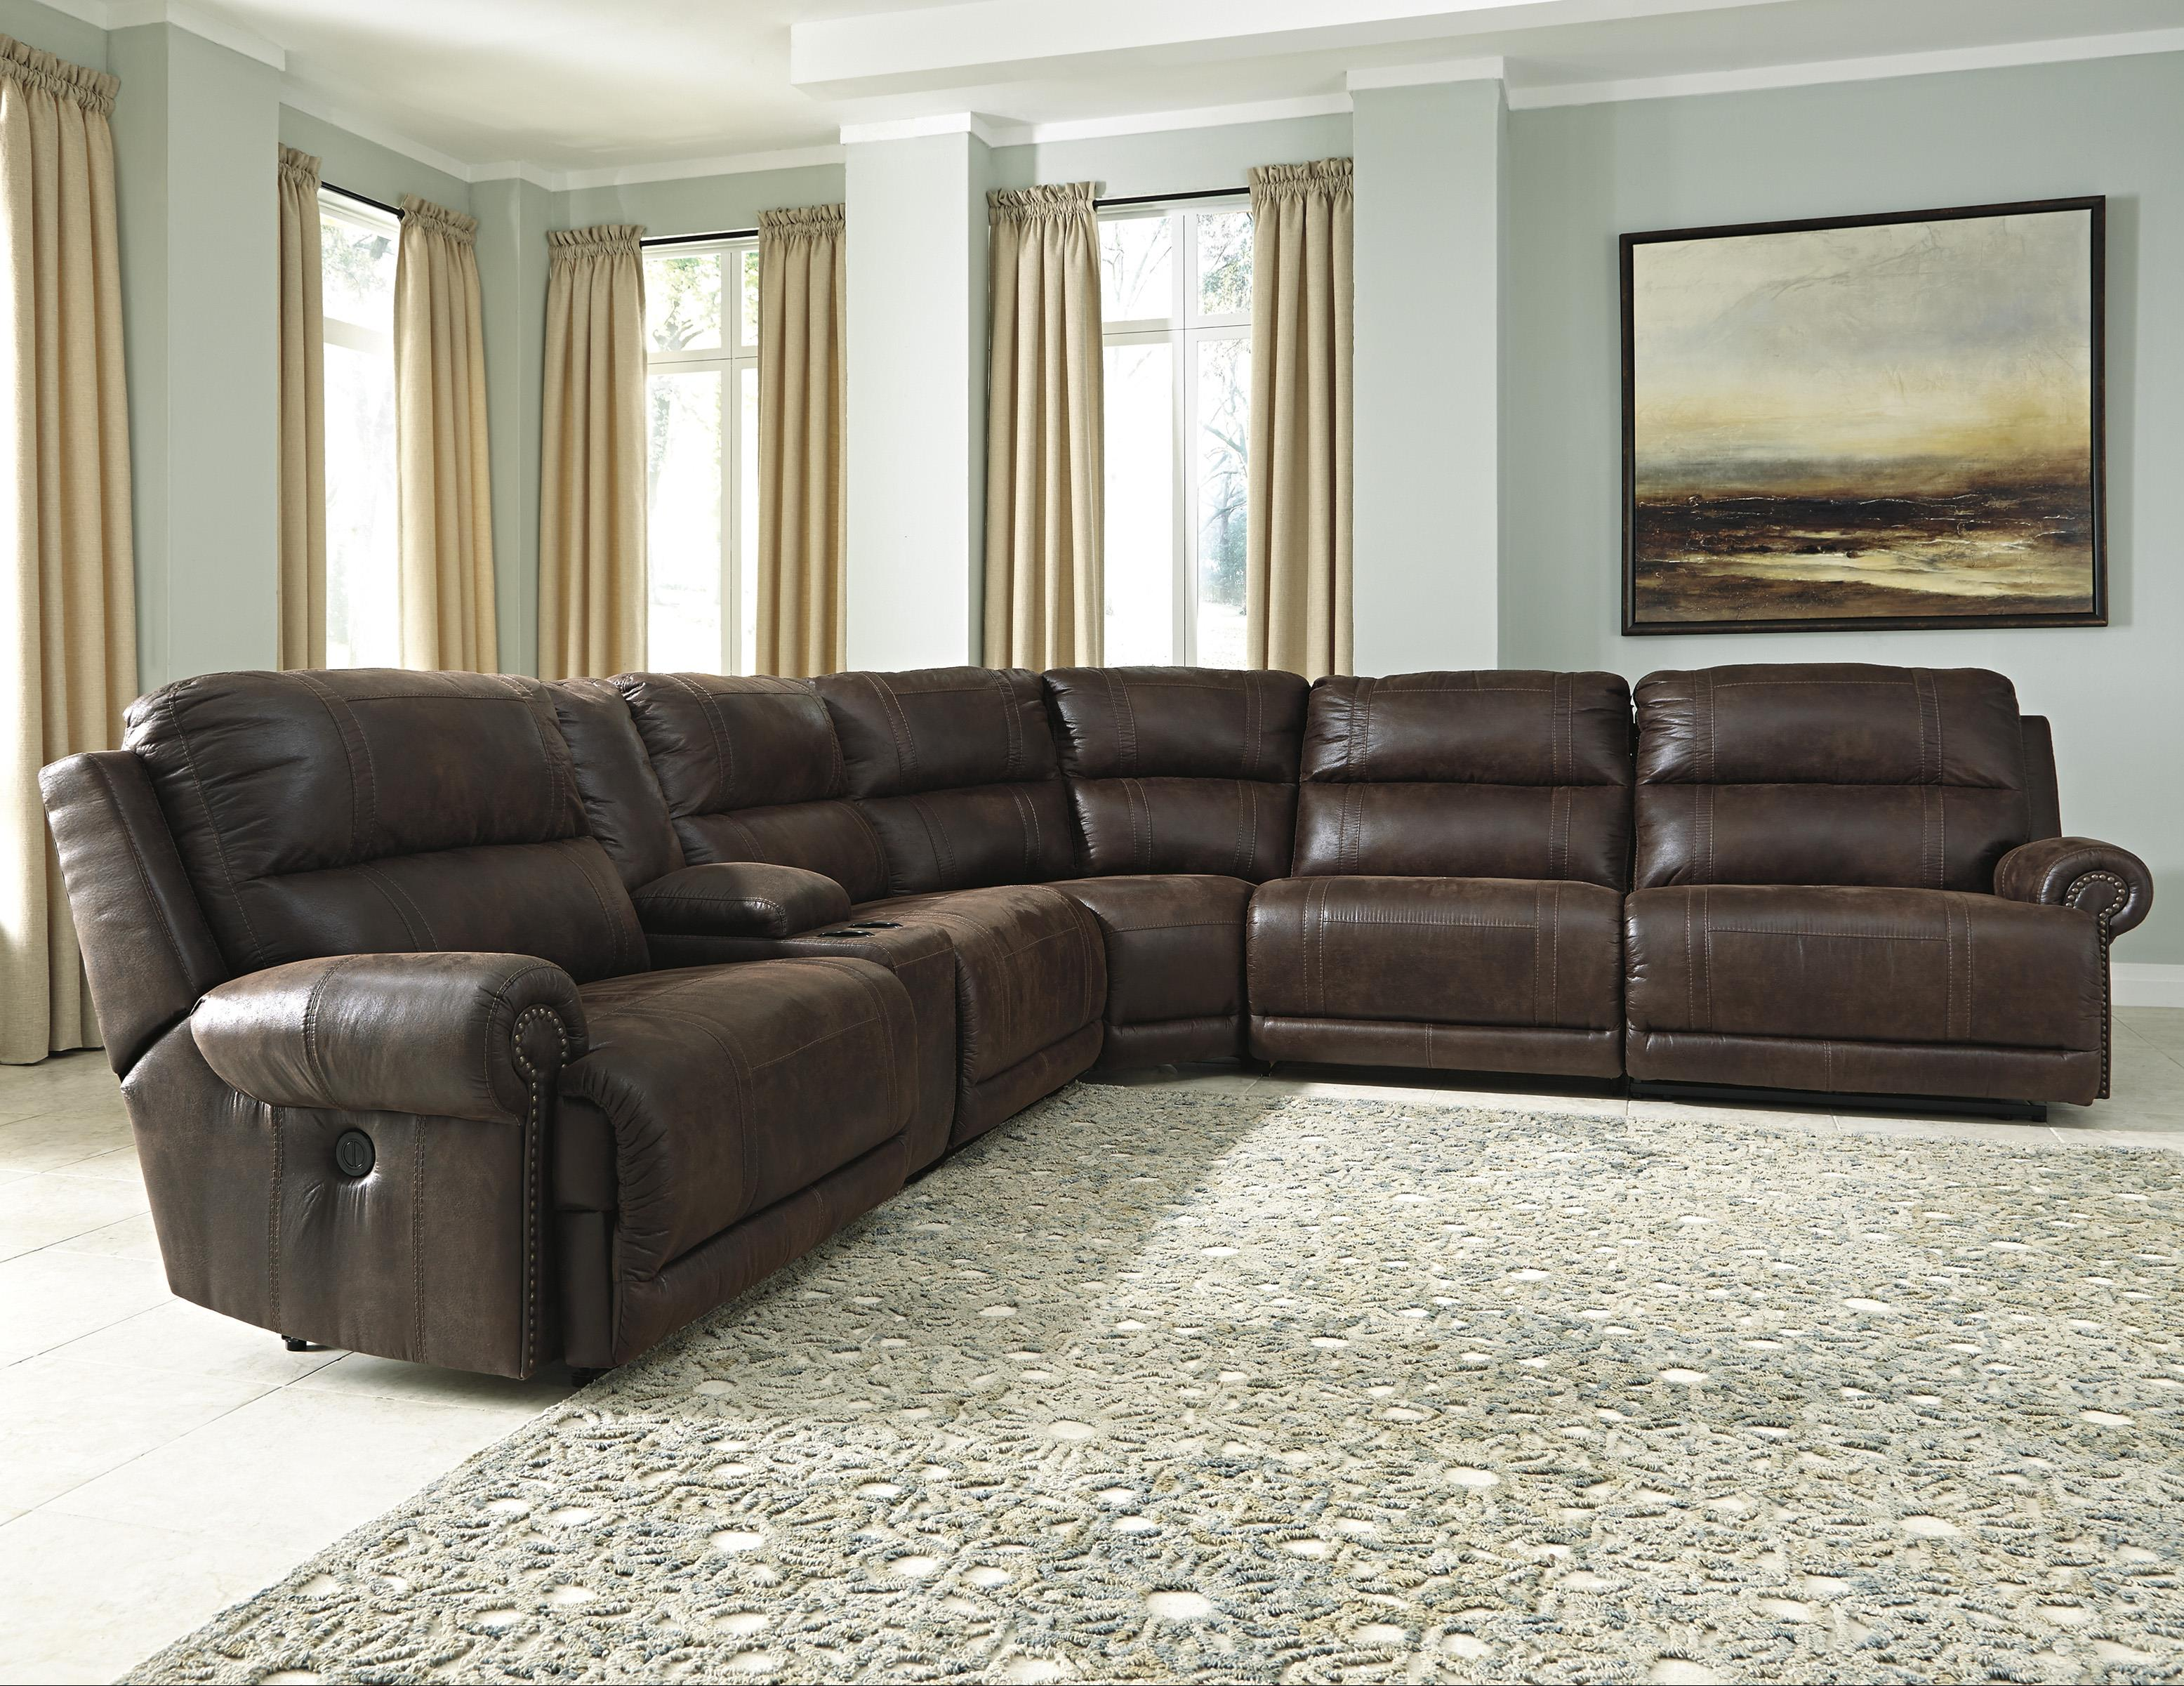 Signature Design by Ashley Luttrell 6Pc Sectional w/ Console & Armless Recliners - Item Number: 9310140+57+2x19+77+41